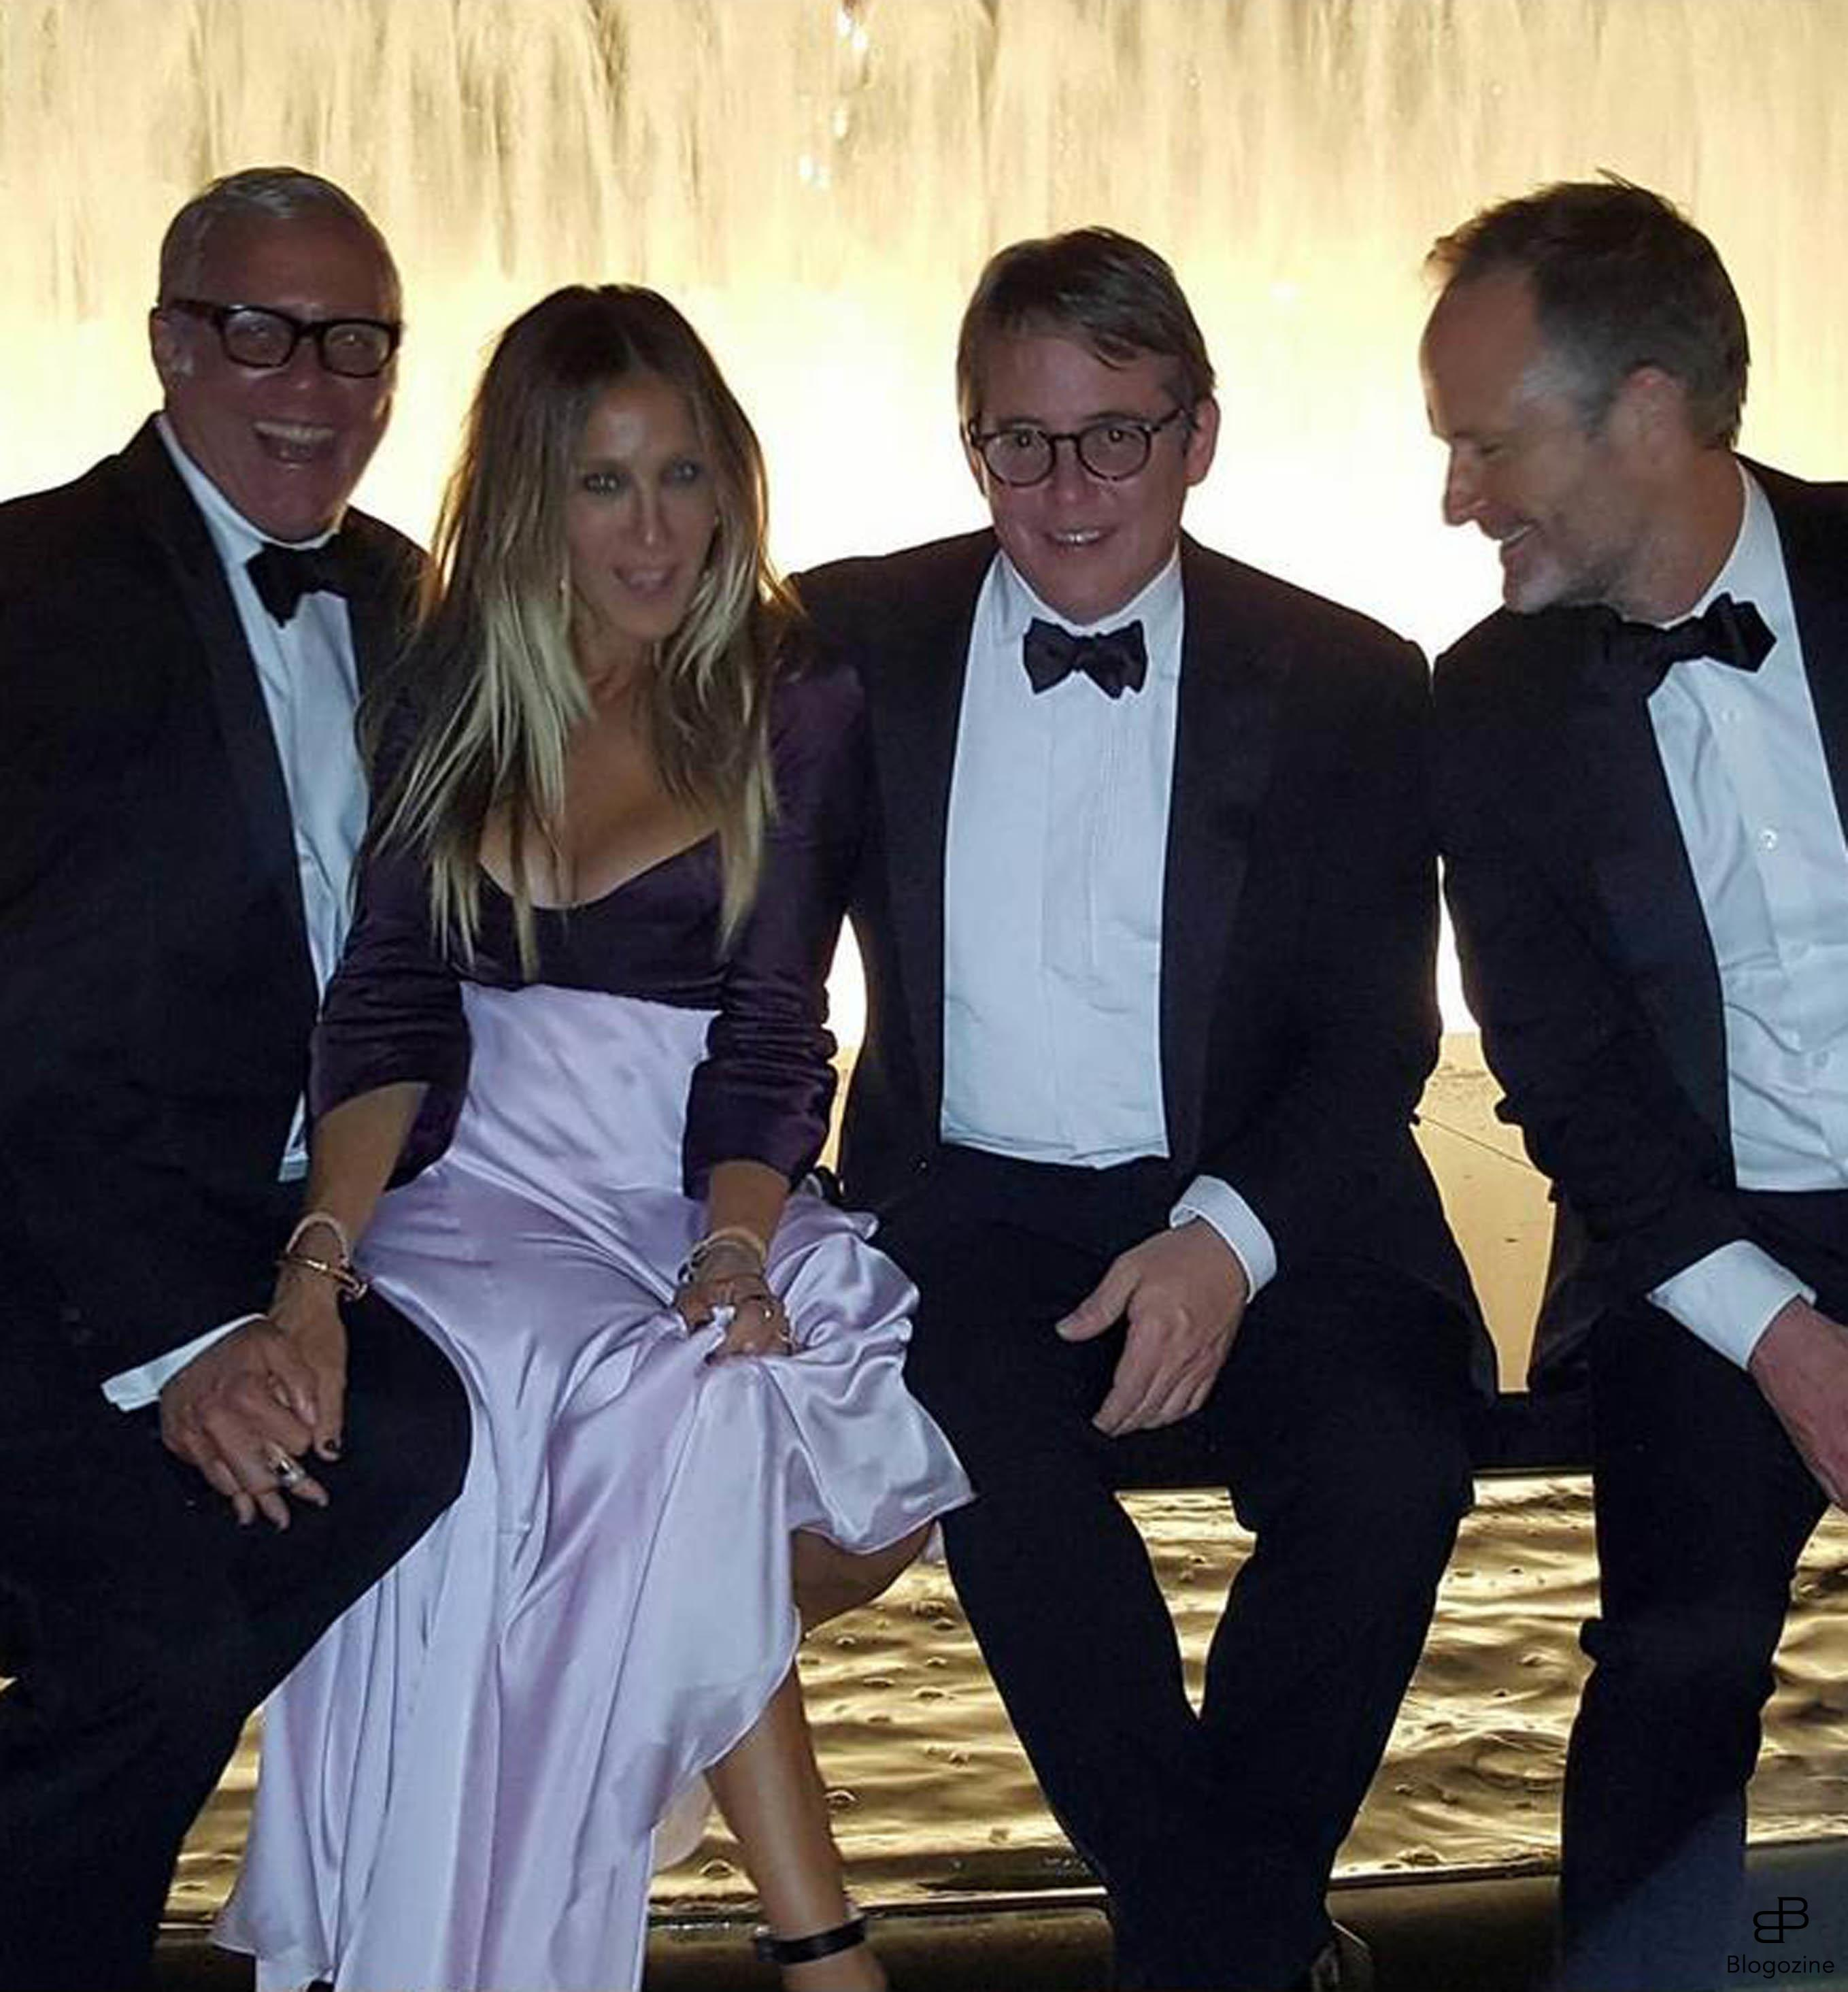 6152276 23-9-2016 Celebrity Selfies Pictured: Sarah Jessica Parker Matthew Broderick PLANET PHOTOS www.planetphotos.co.uk info@planetphotos.co.uk +44 (0)20 8883 1438 DISTR. STELLA PICTURES